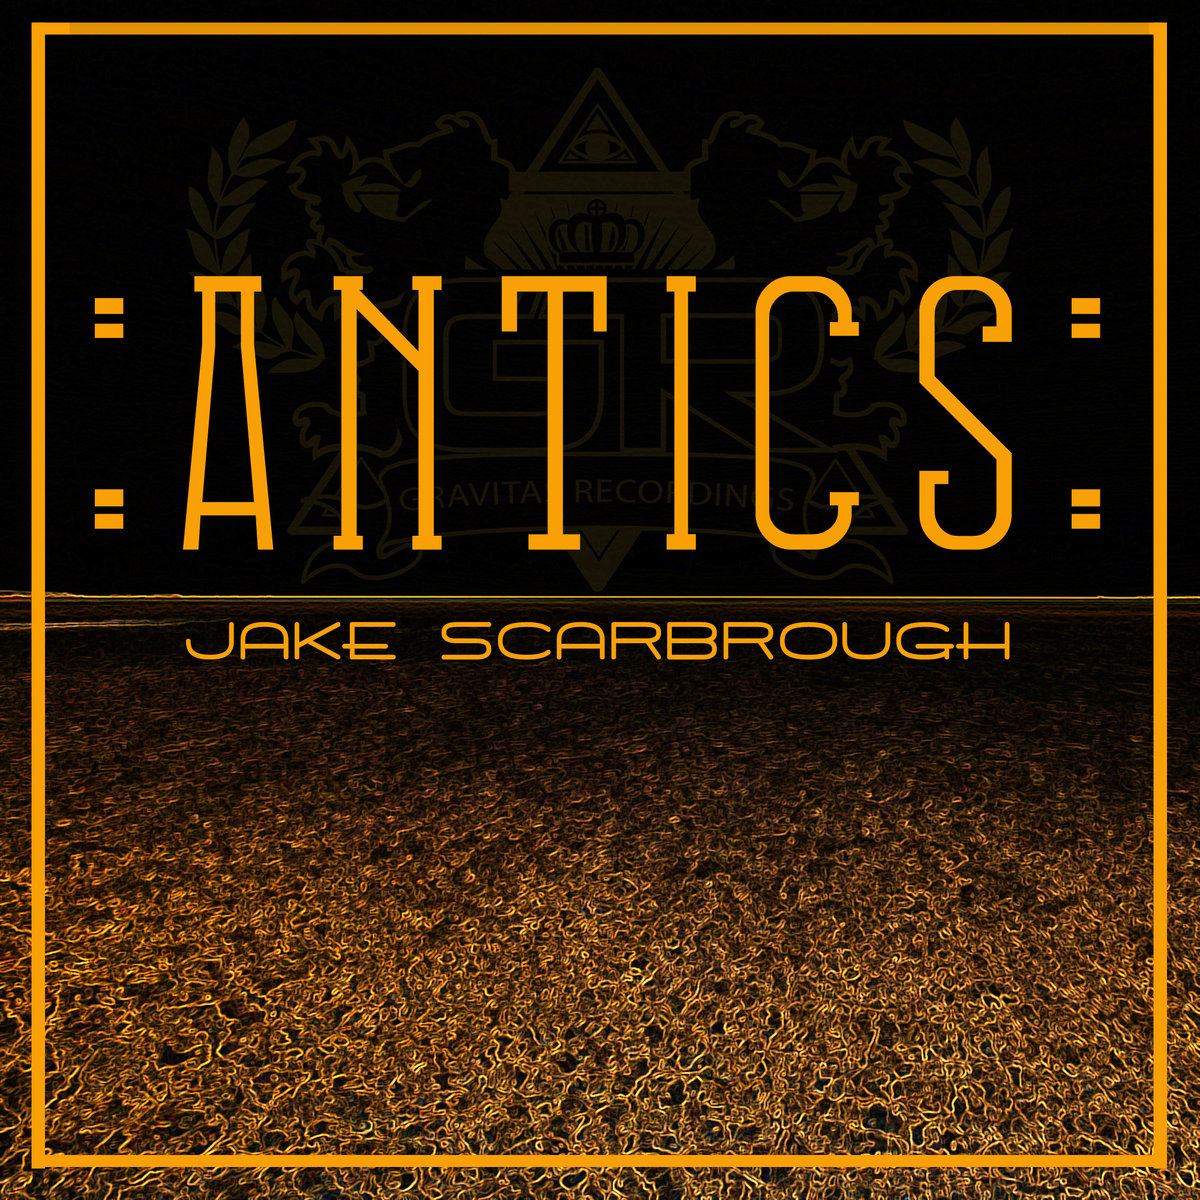 Jake Scarbrough - See Where The Night Goes @ 'Antics' album (Austin)